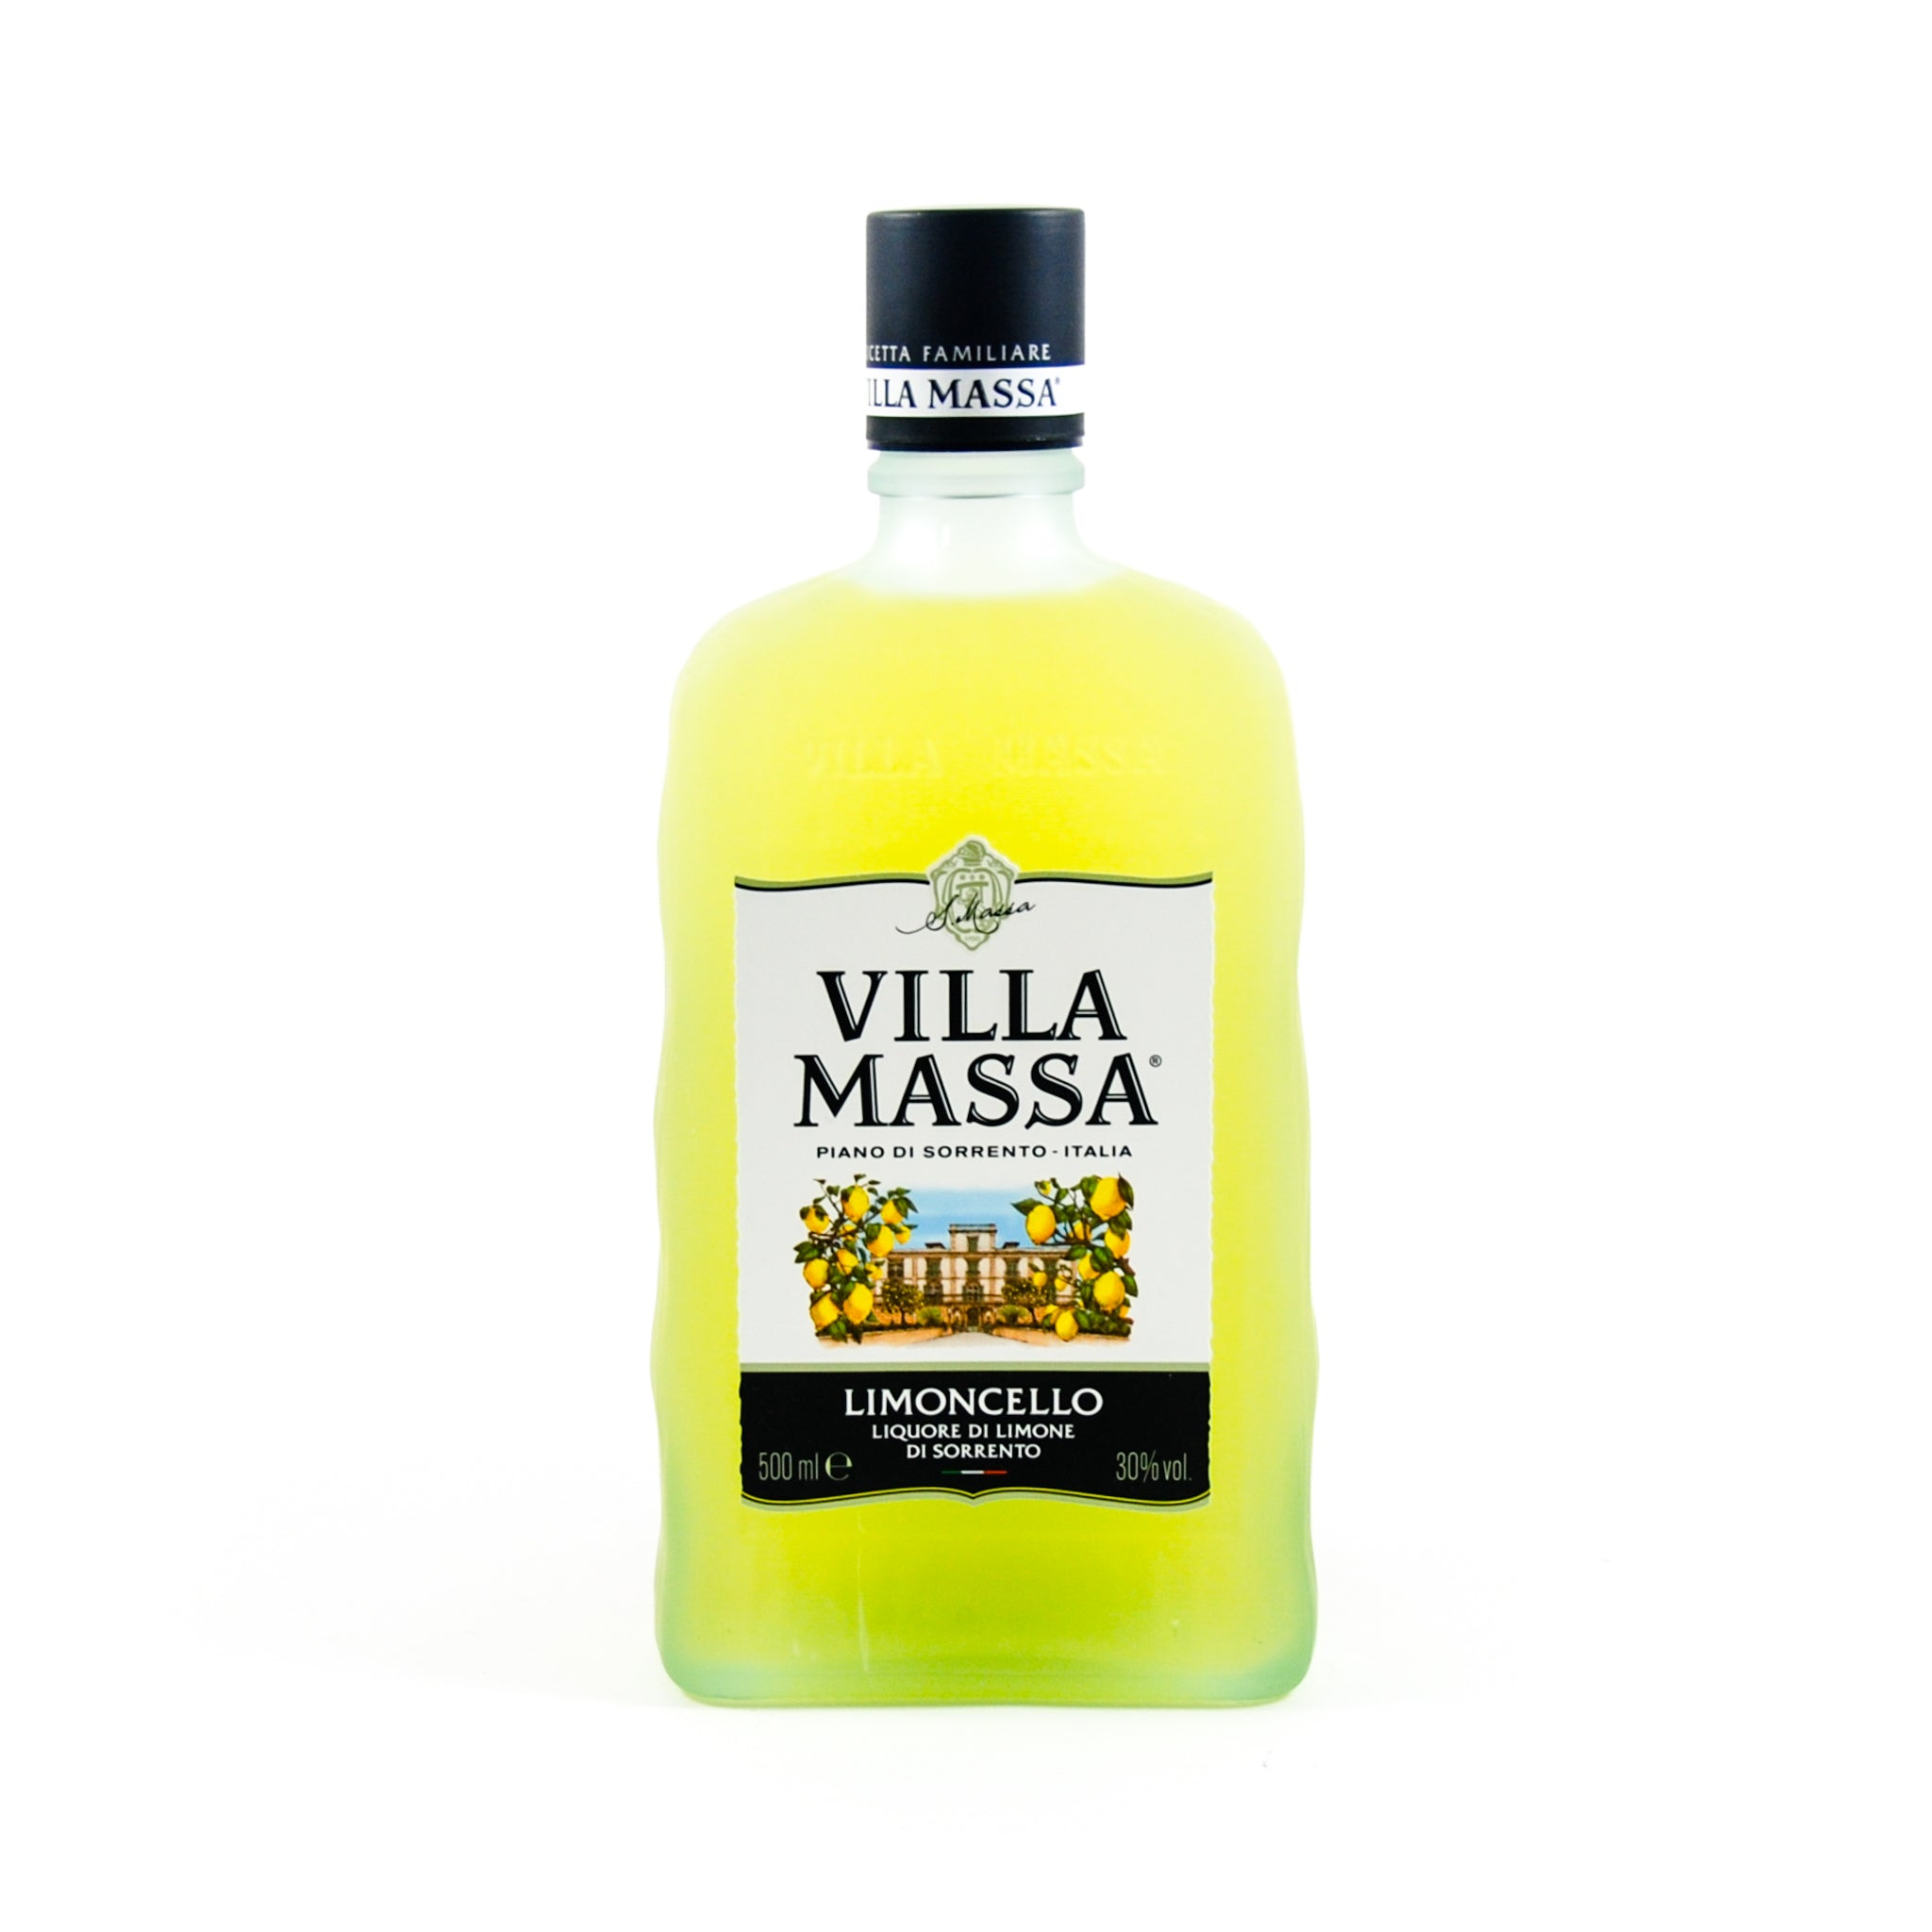 Villa Massa Limoncello 500ml Ingredients Drinks Alcohol Italian Food